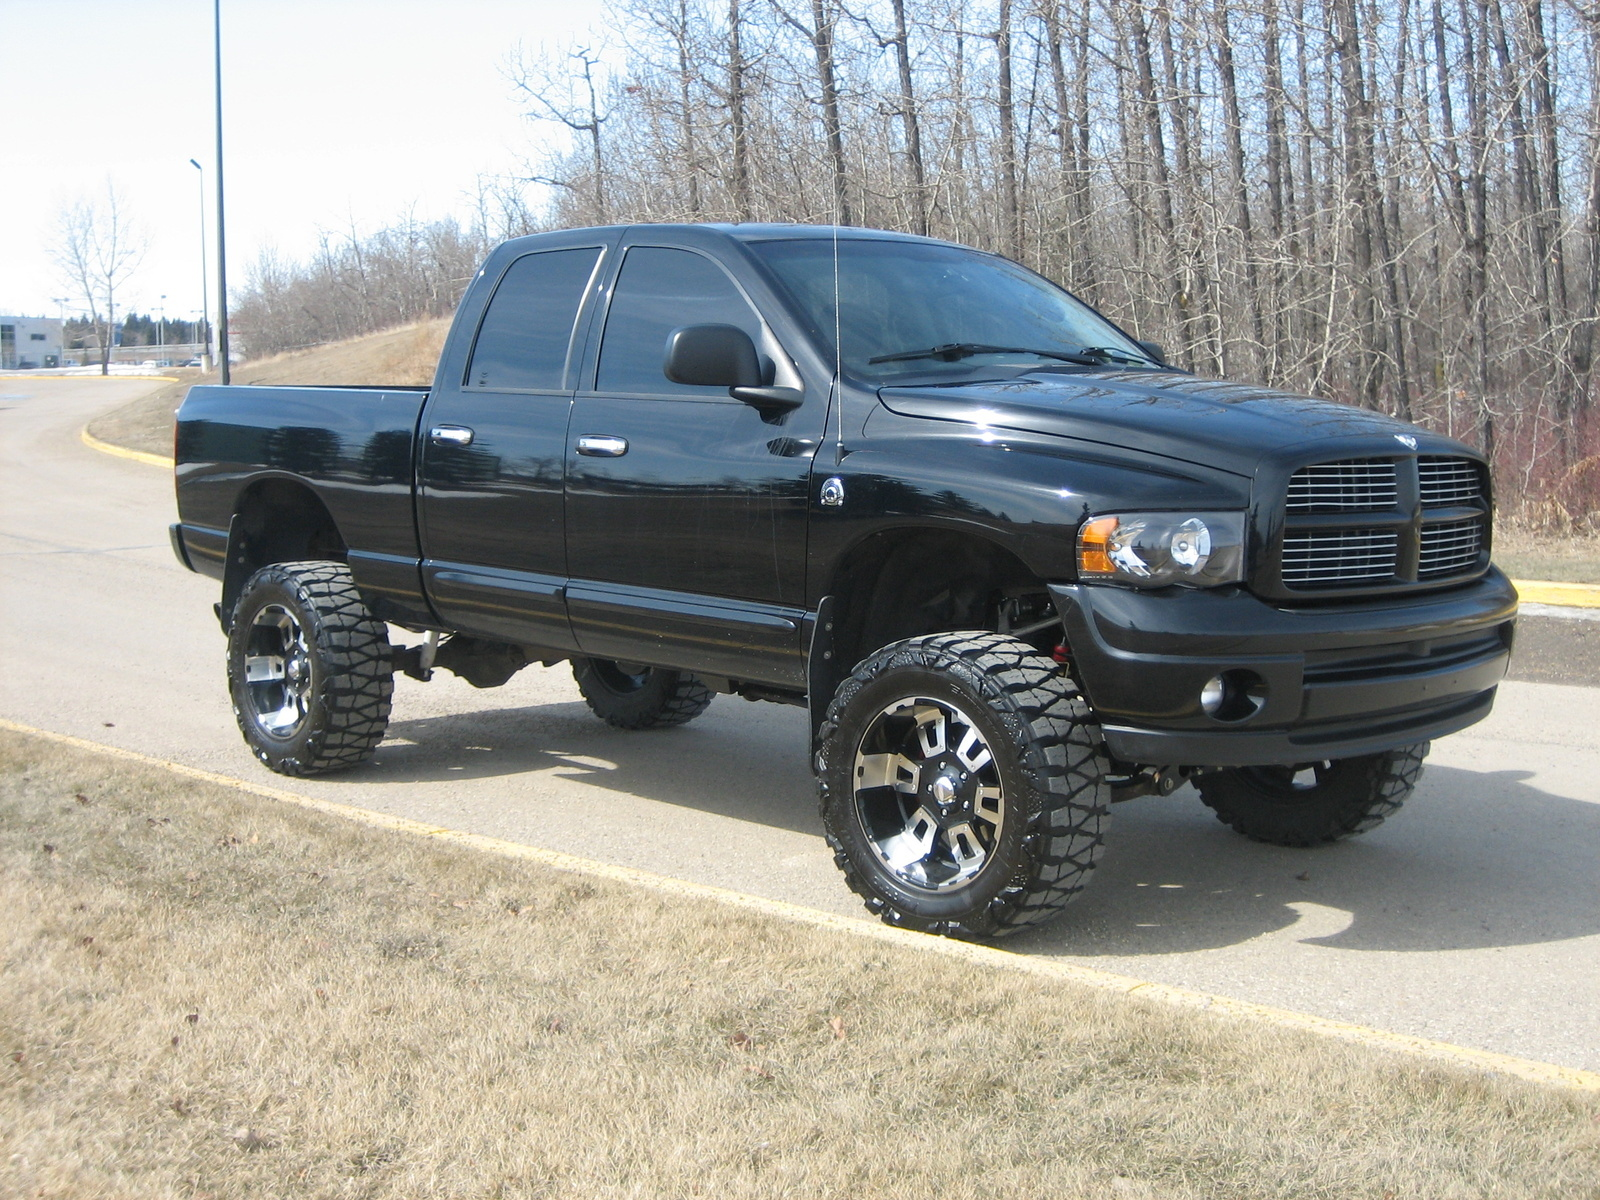 dodge trucks 2014 lifted for sale. dodge trucks 2014 lifted for sale